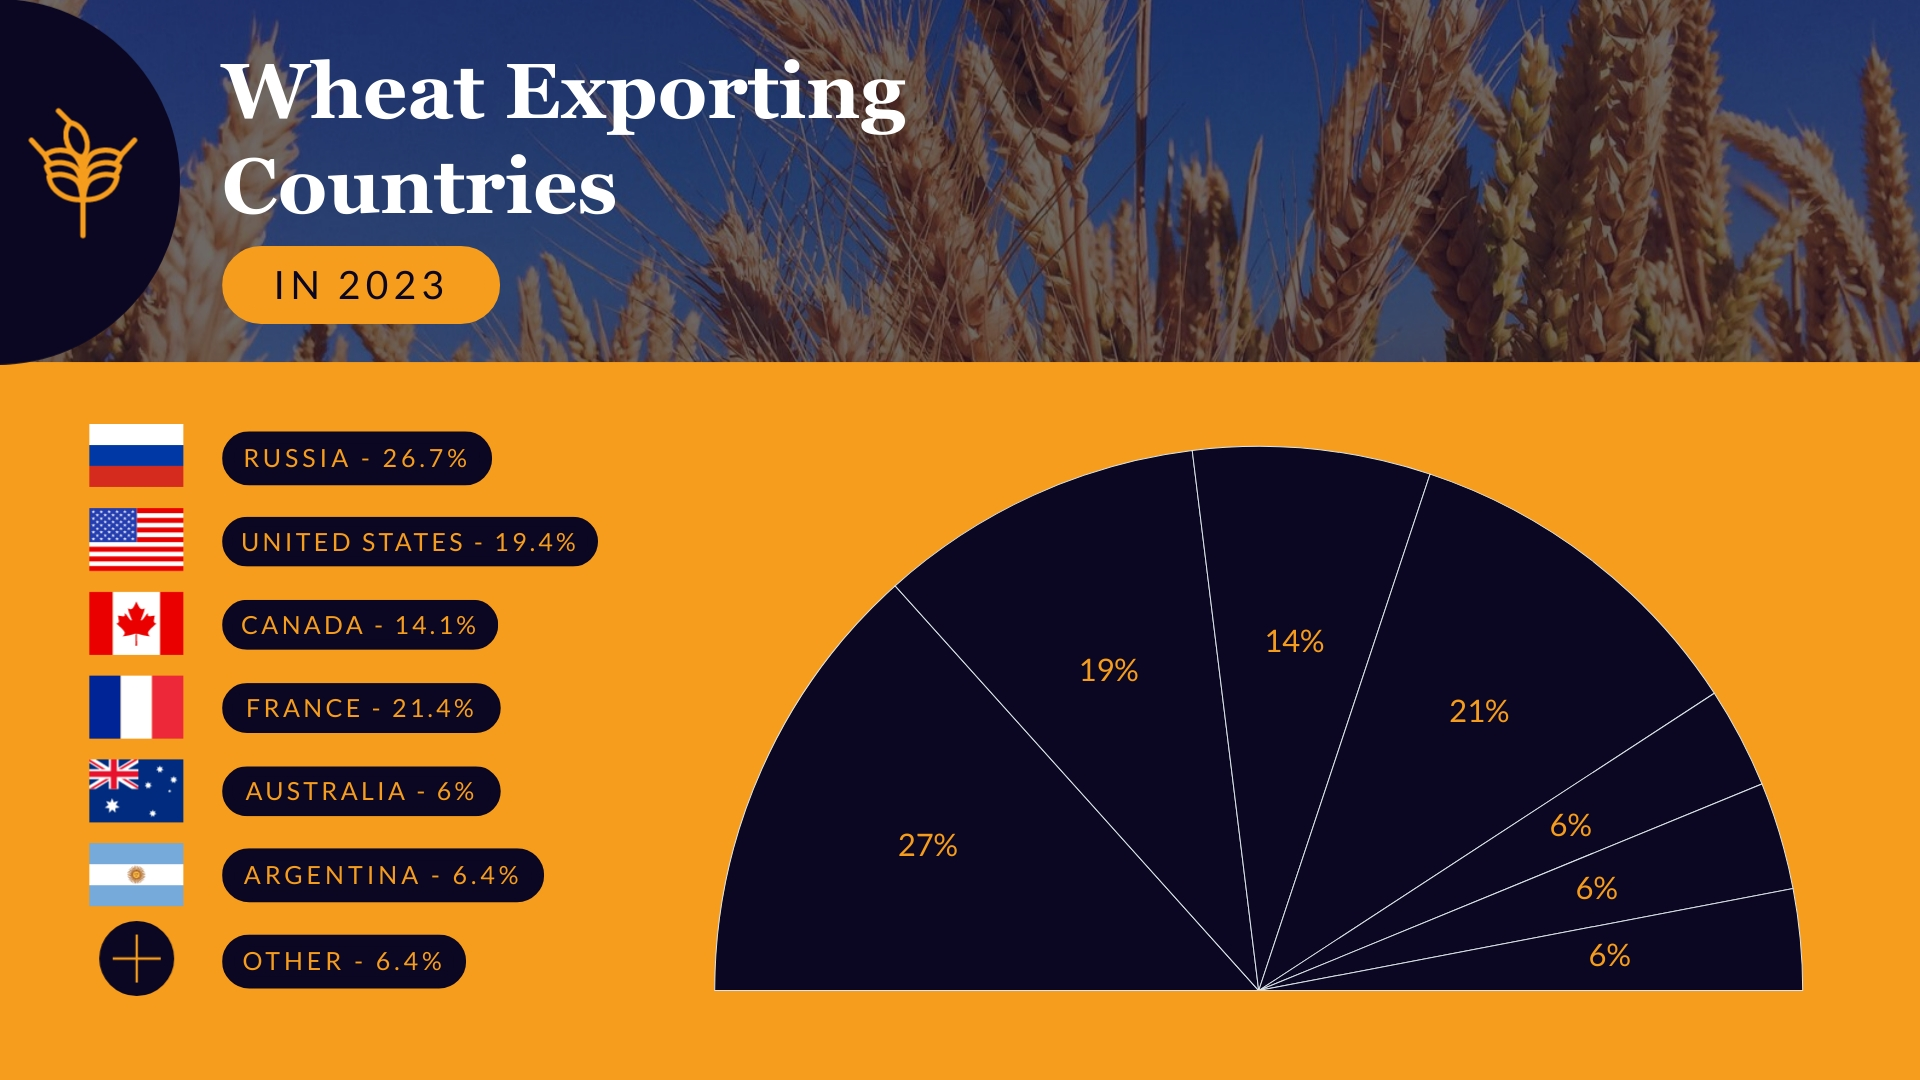 Wheat Exporting Countries Pie Chart Template